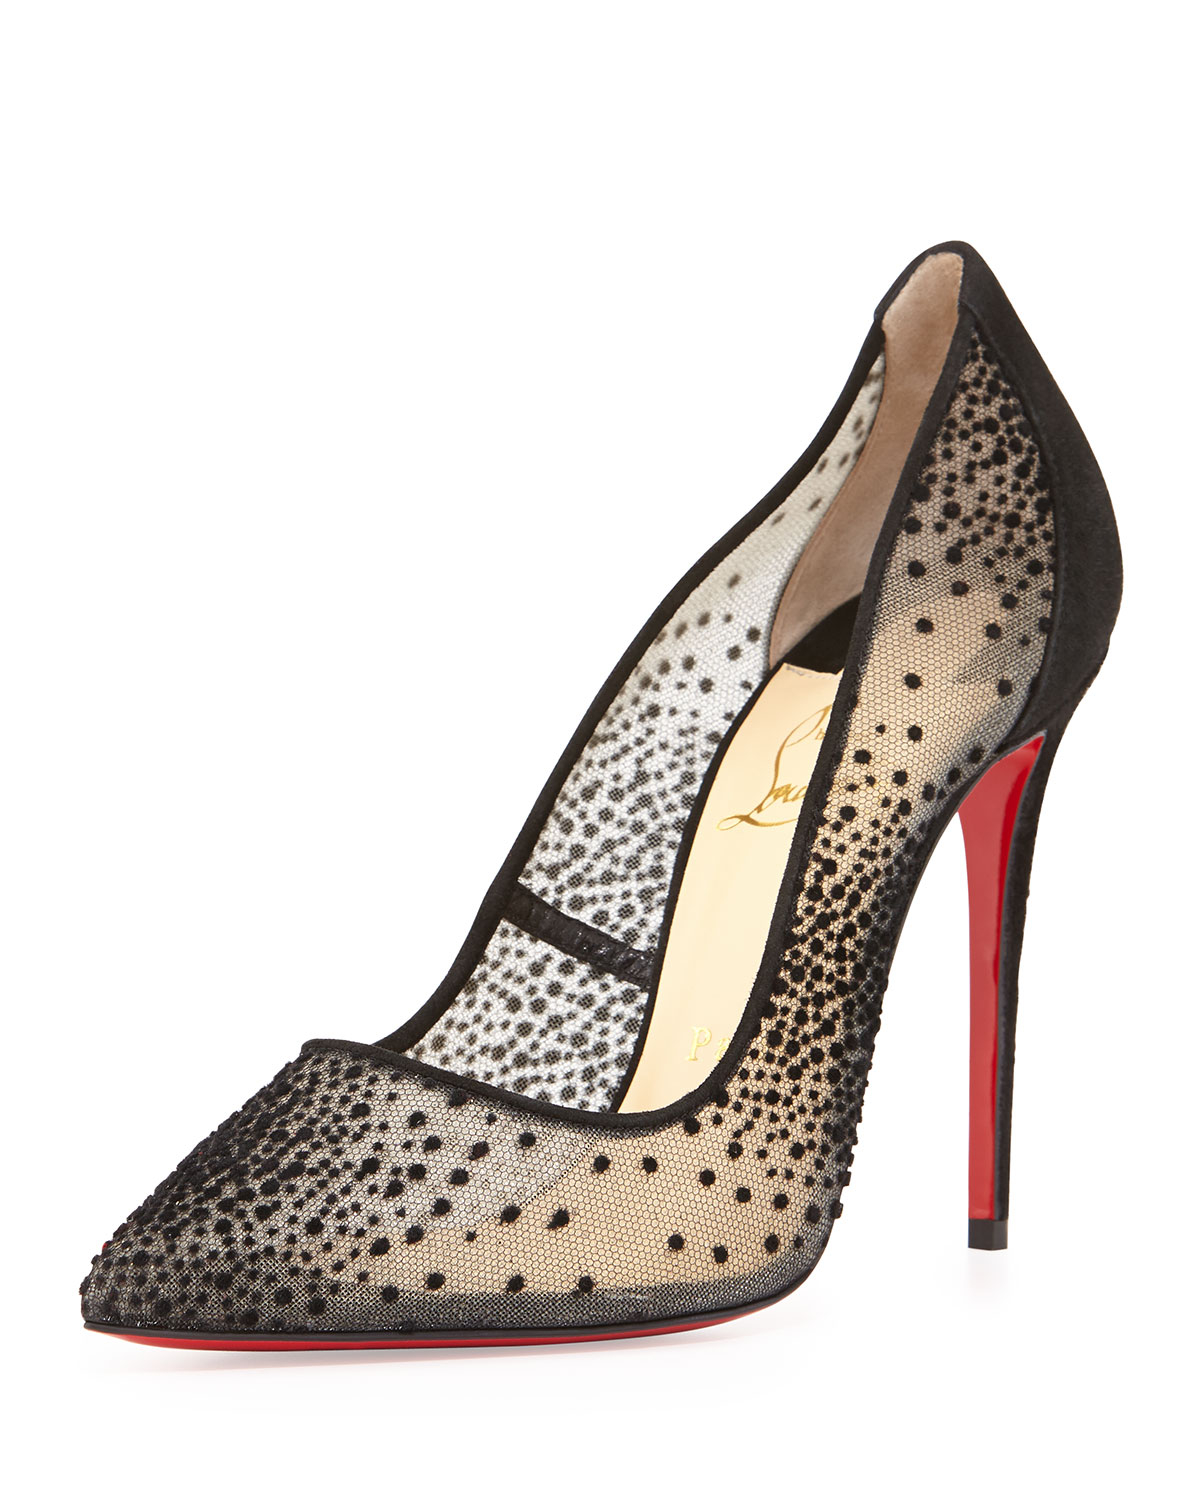 Christian Louboutin Shoes For Sale On Ebay